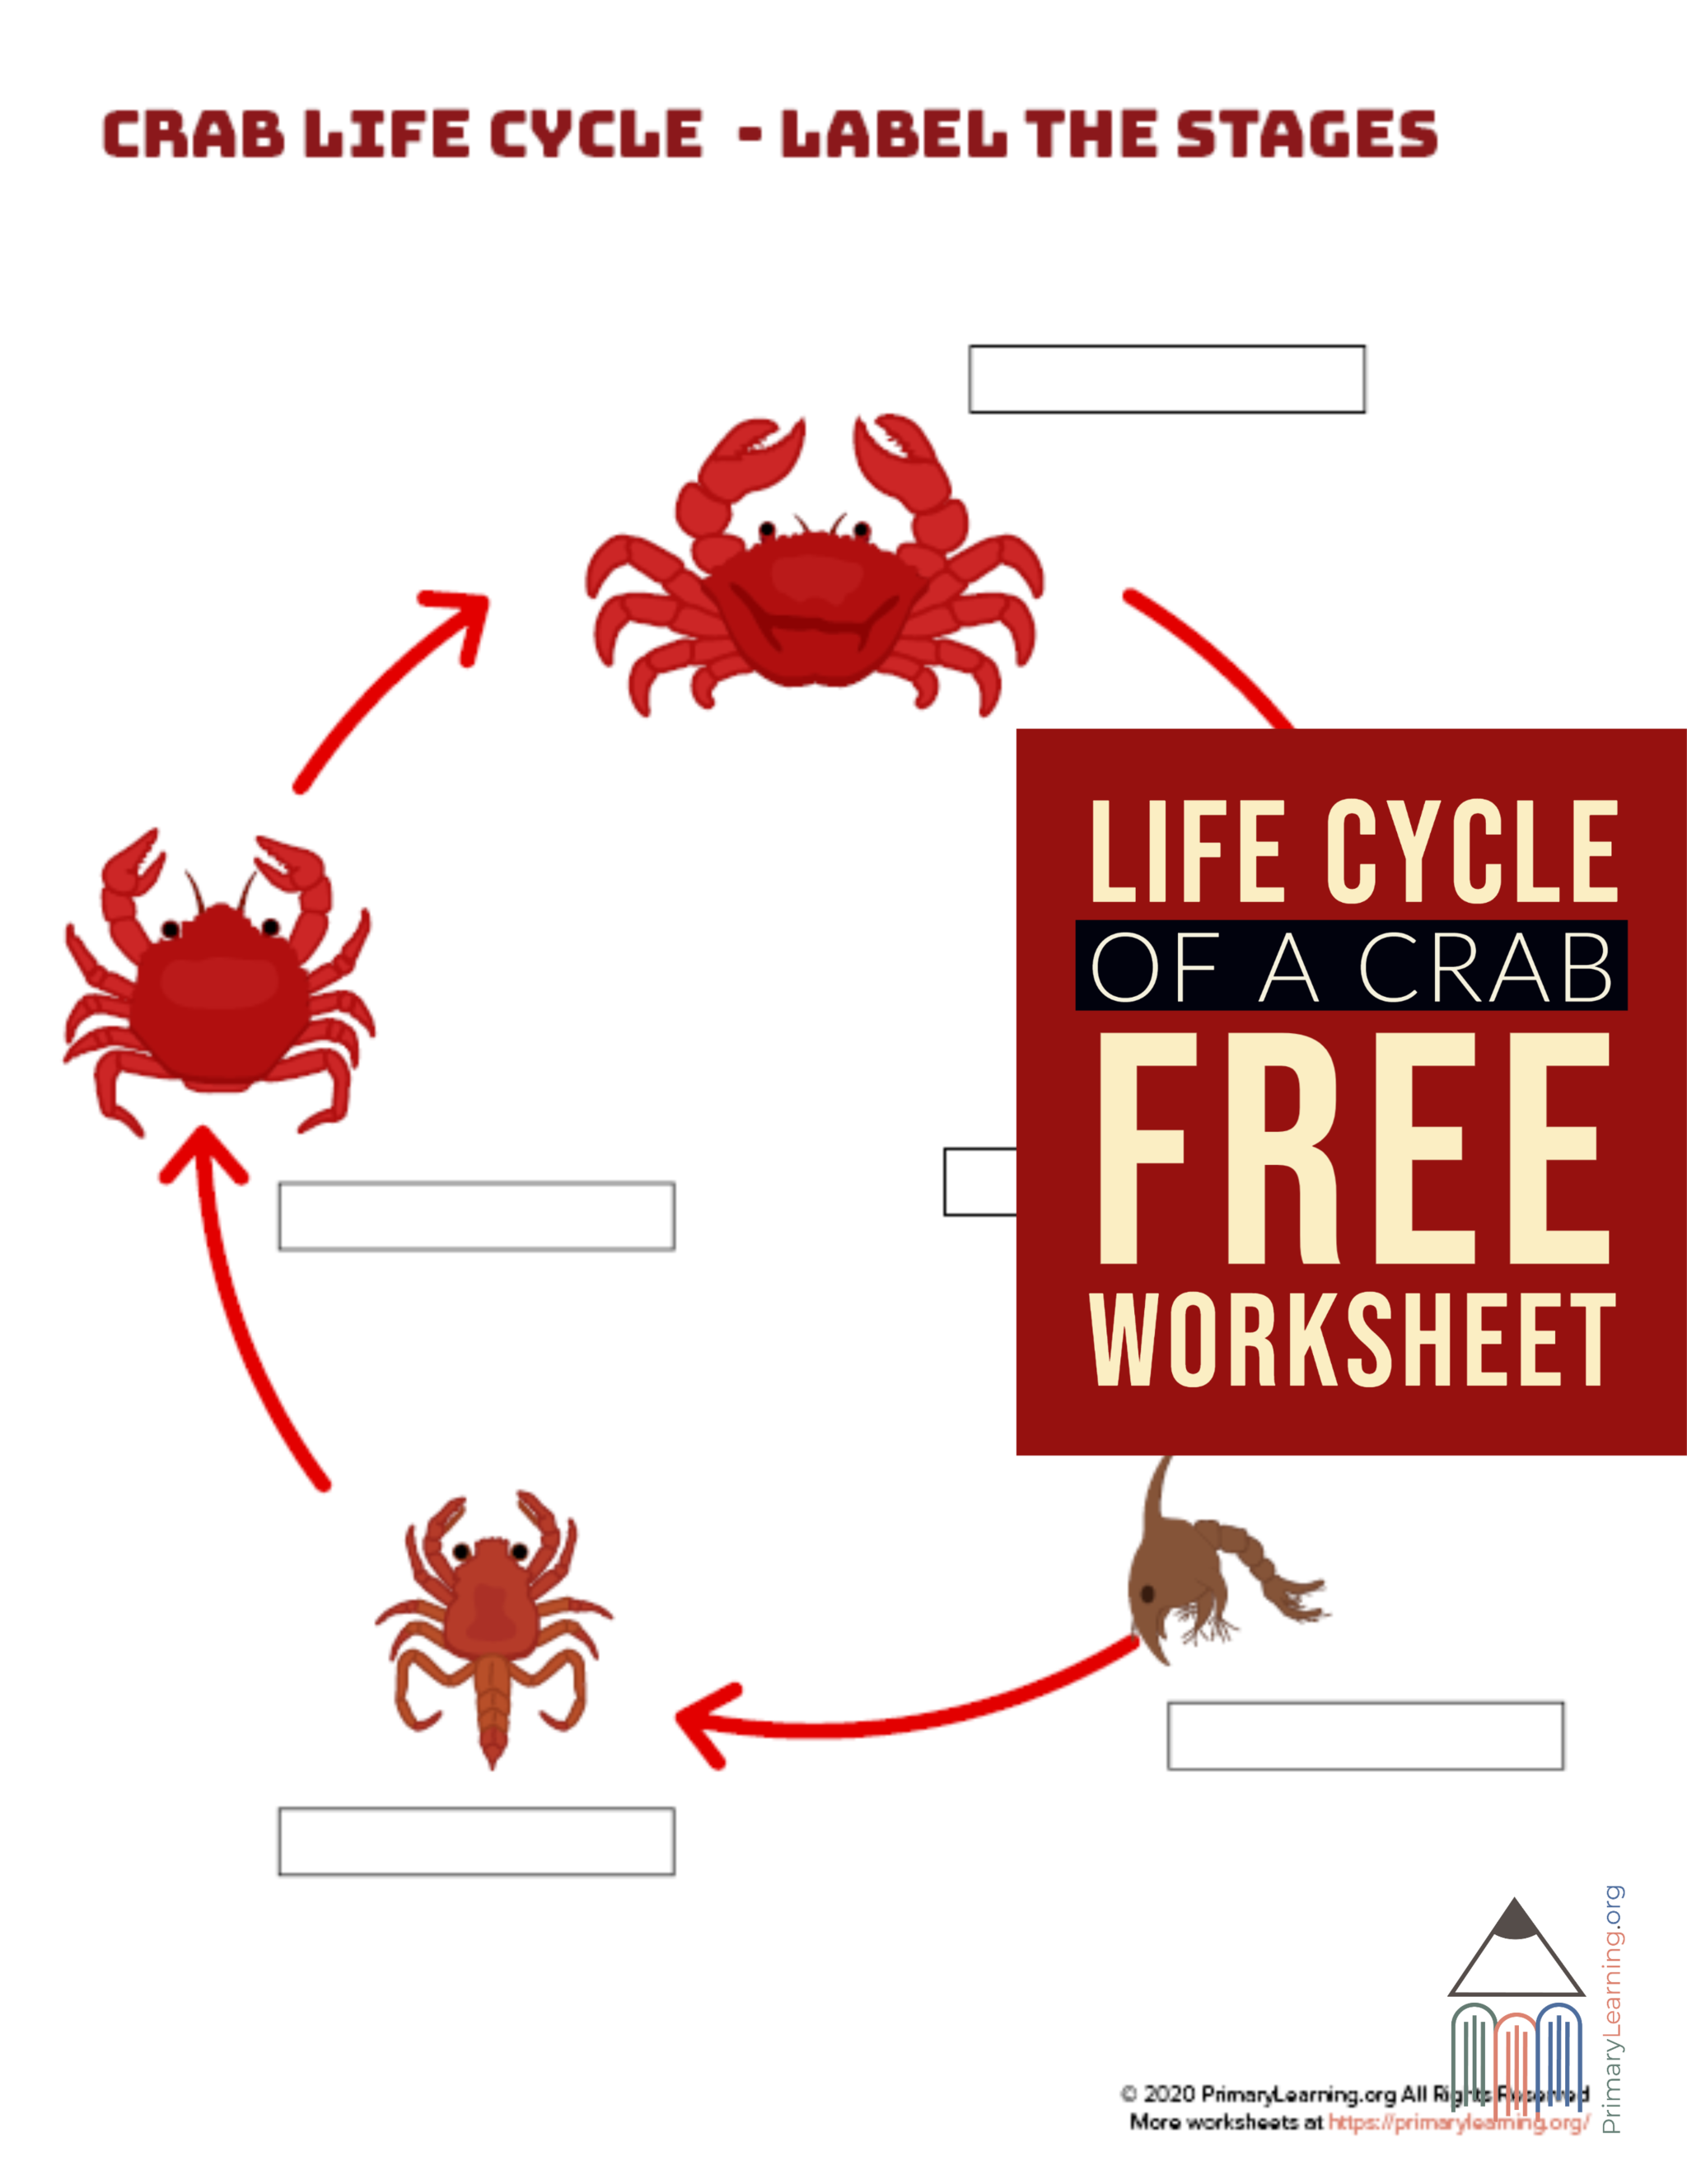 Students Use This Worksheet To Label The Stage Of Crab